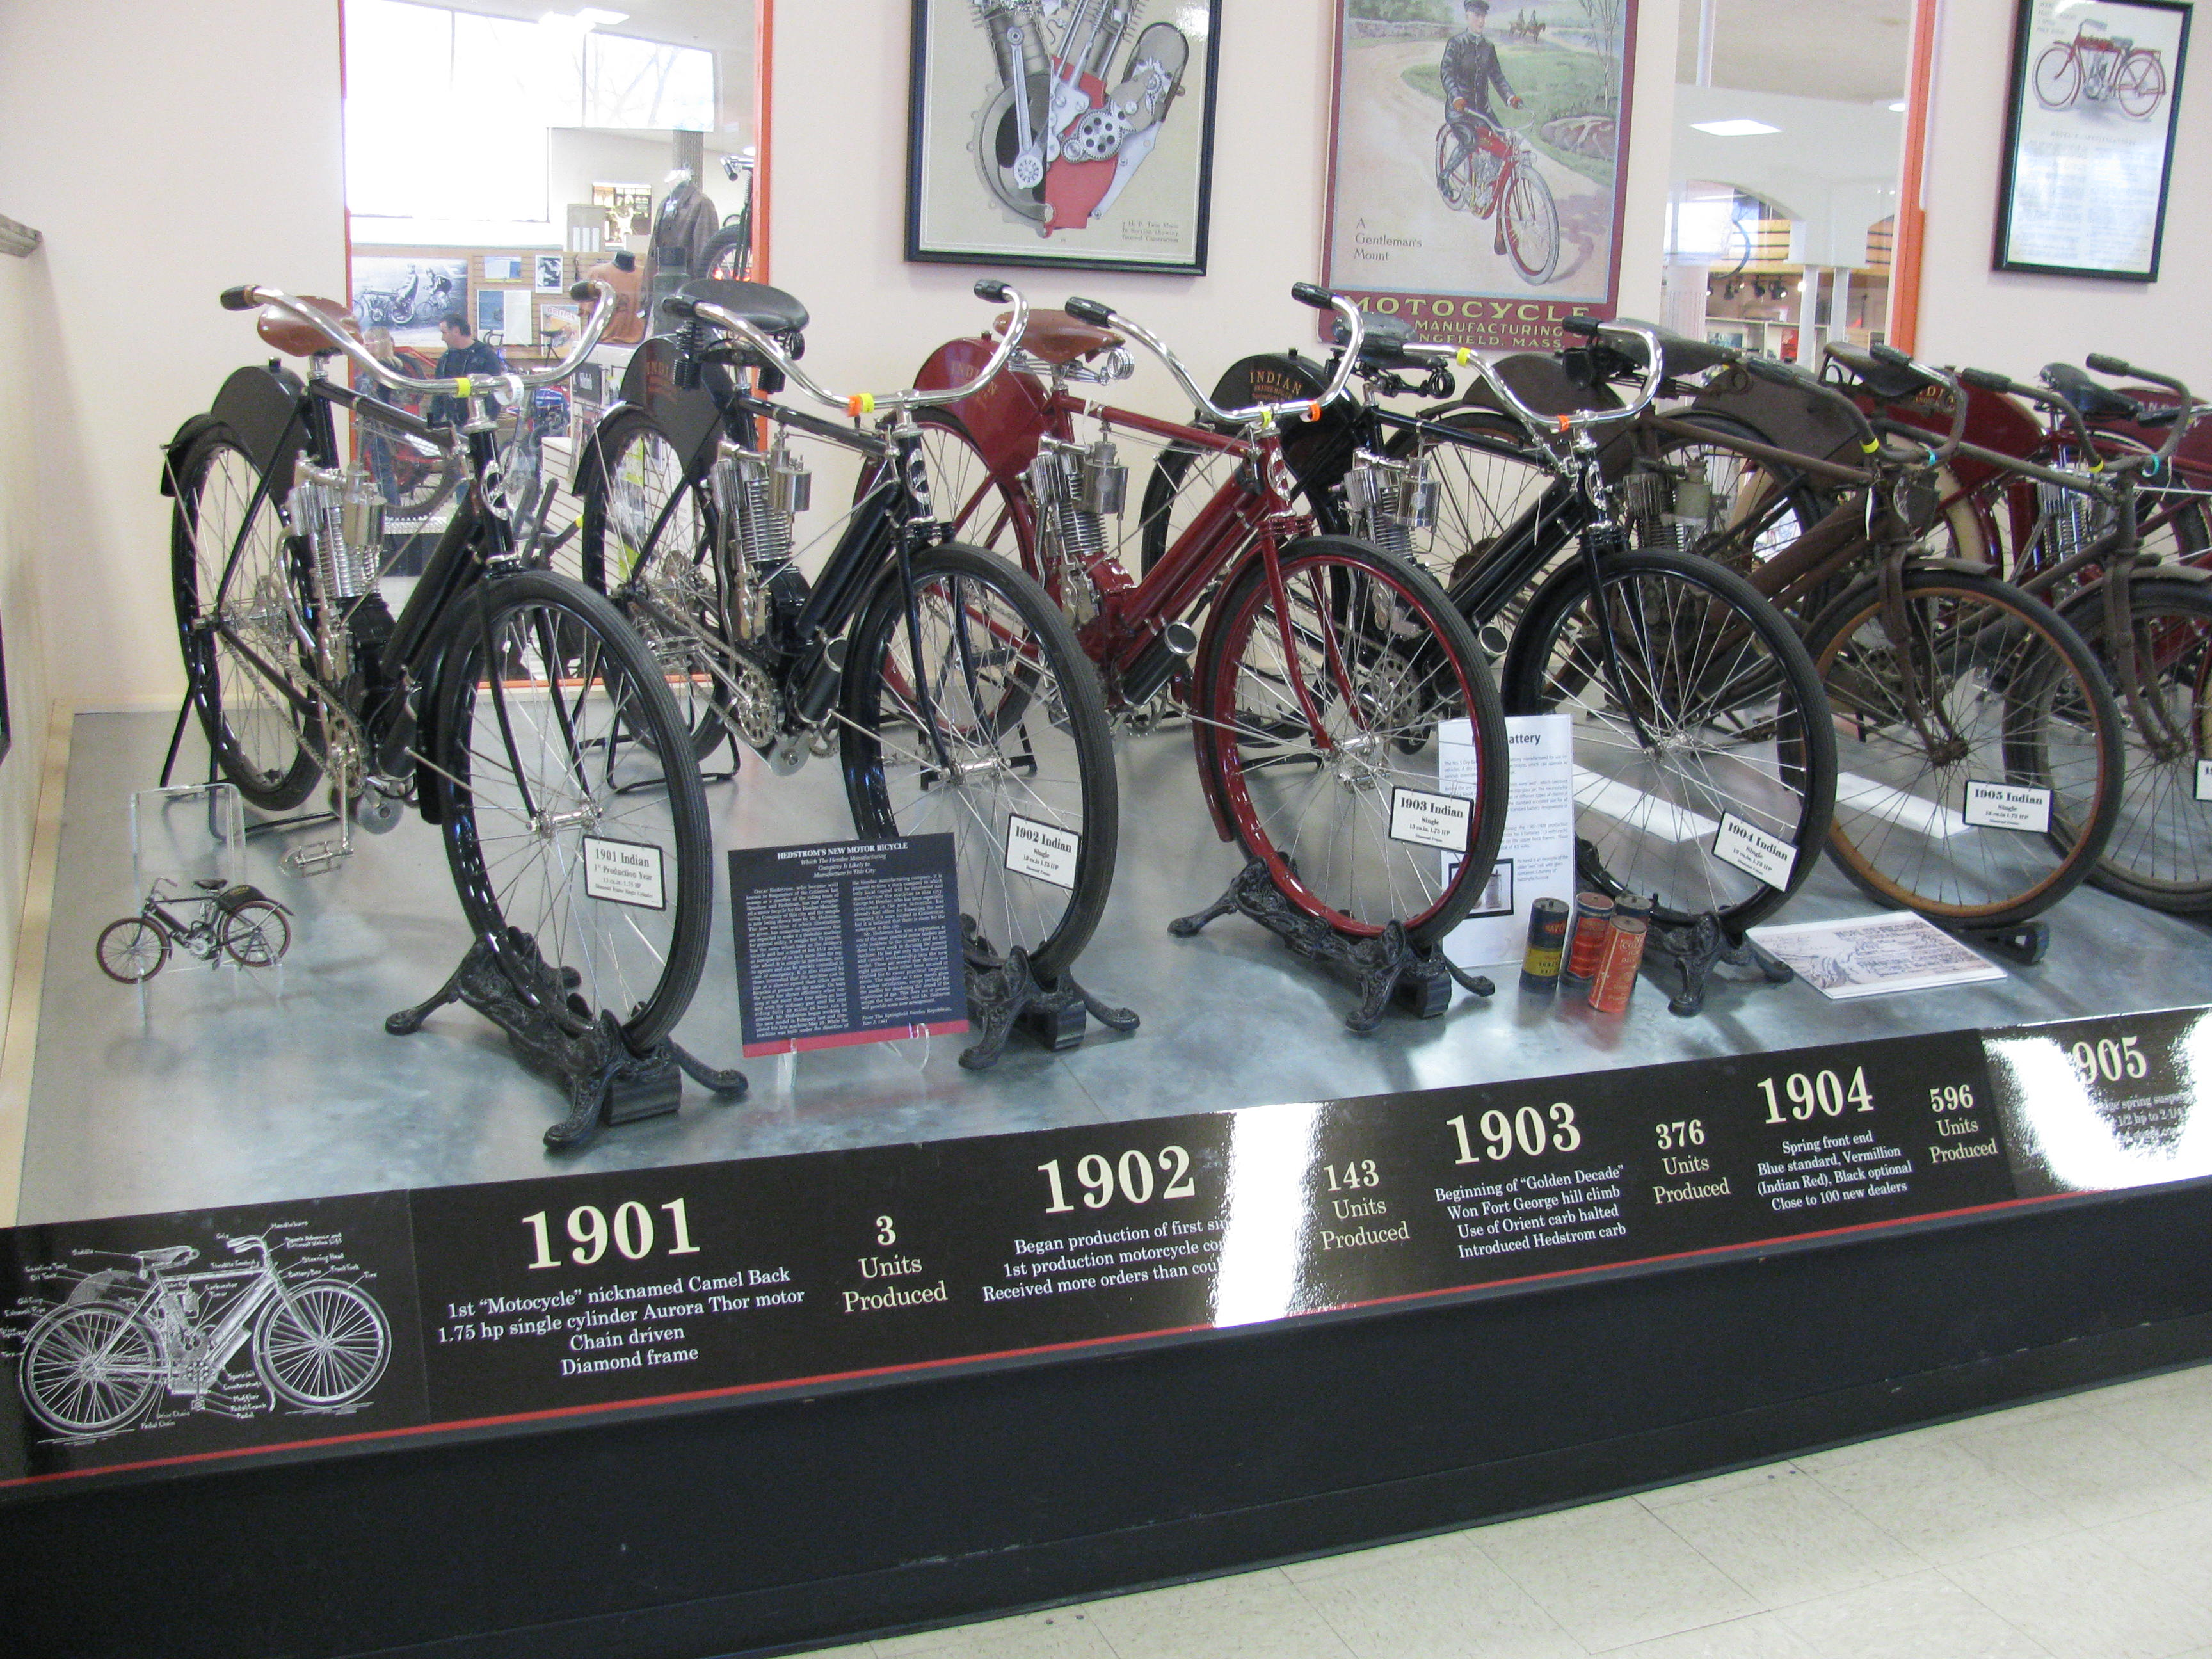 Motorcyclepedia Museum Indian Motorcycle Forum - Great museums in us